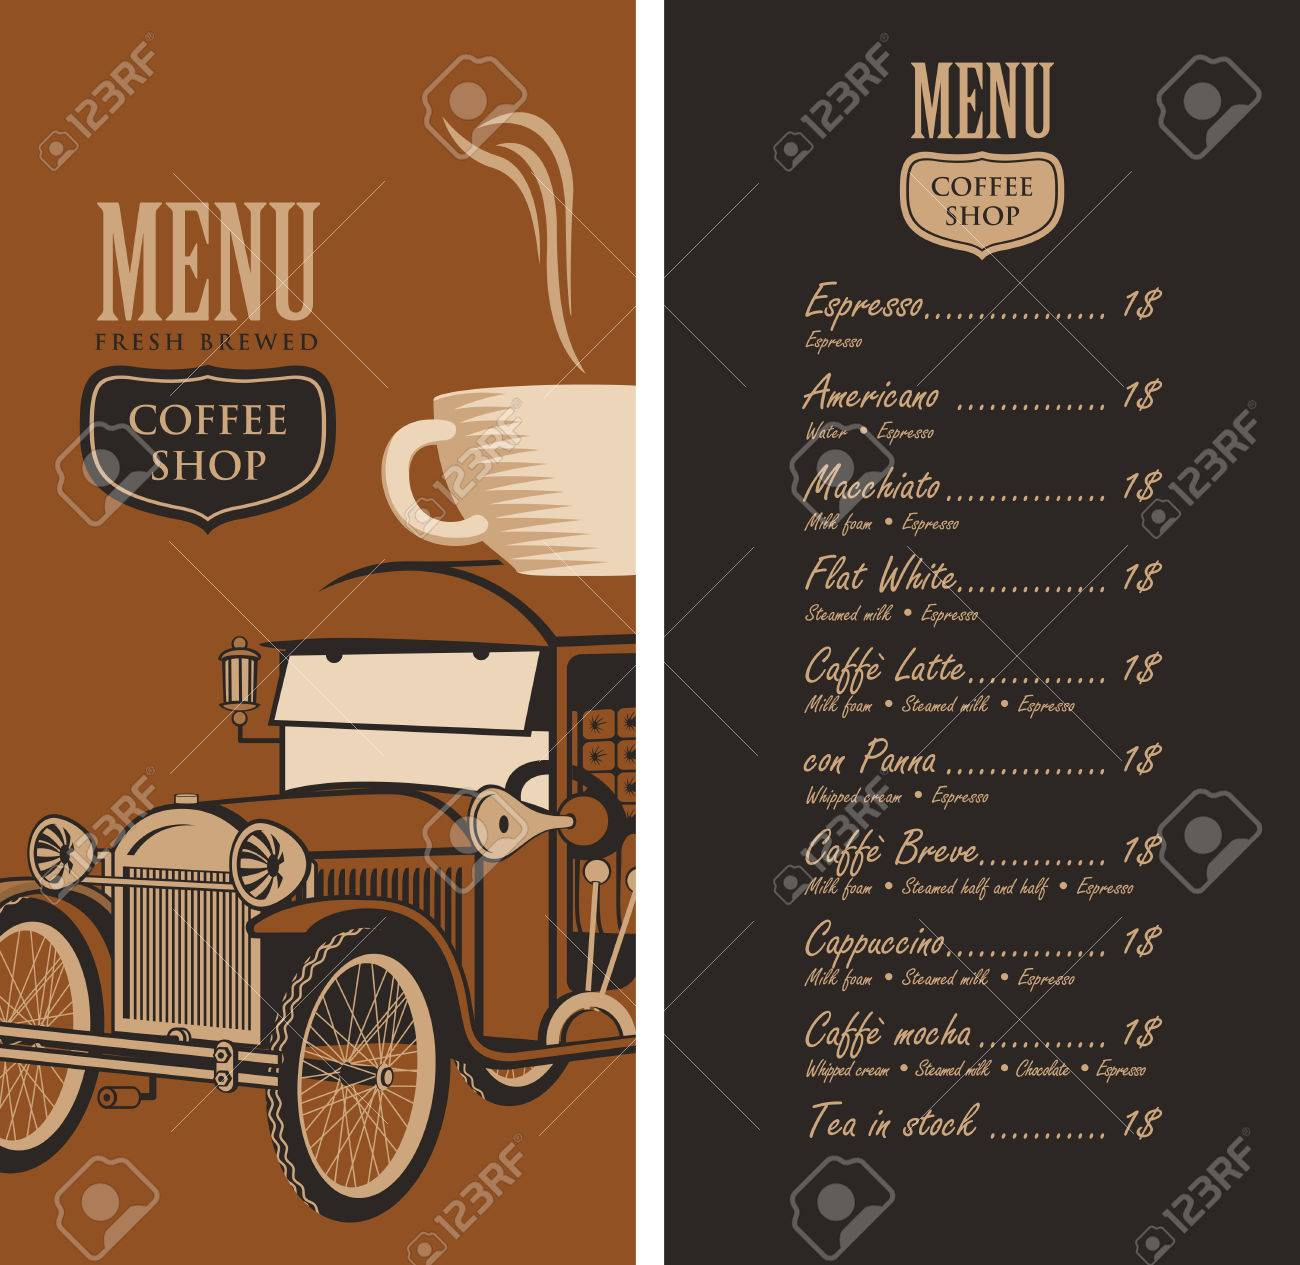 Template Vector Menu For A Coffee Shop With Old Car, Cup Of Coffee ...